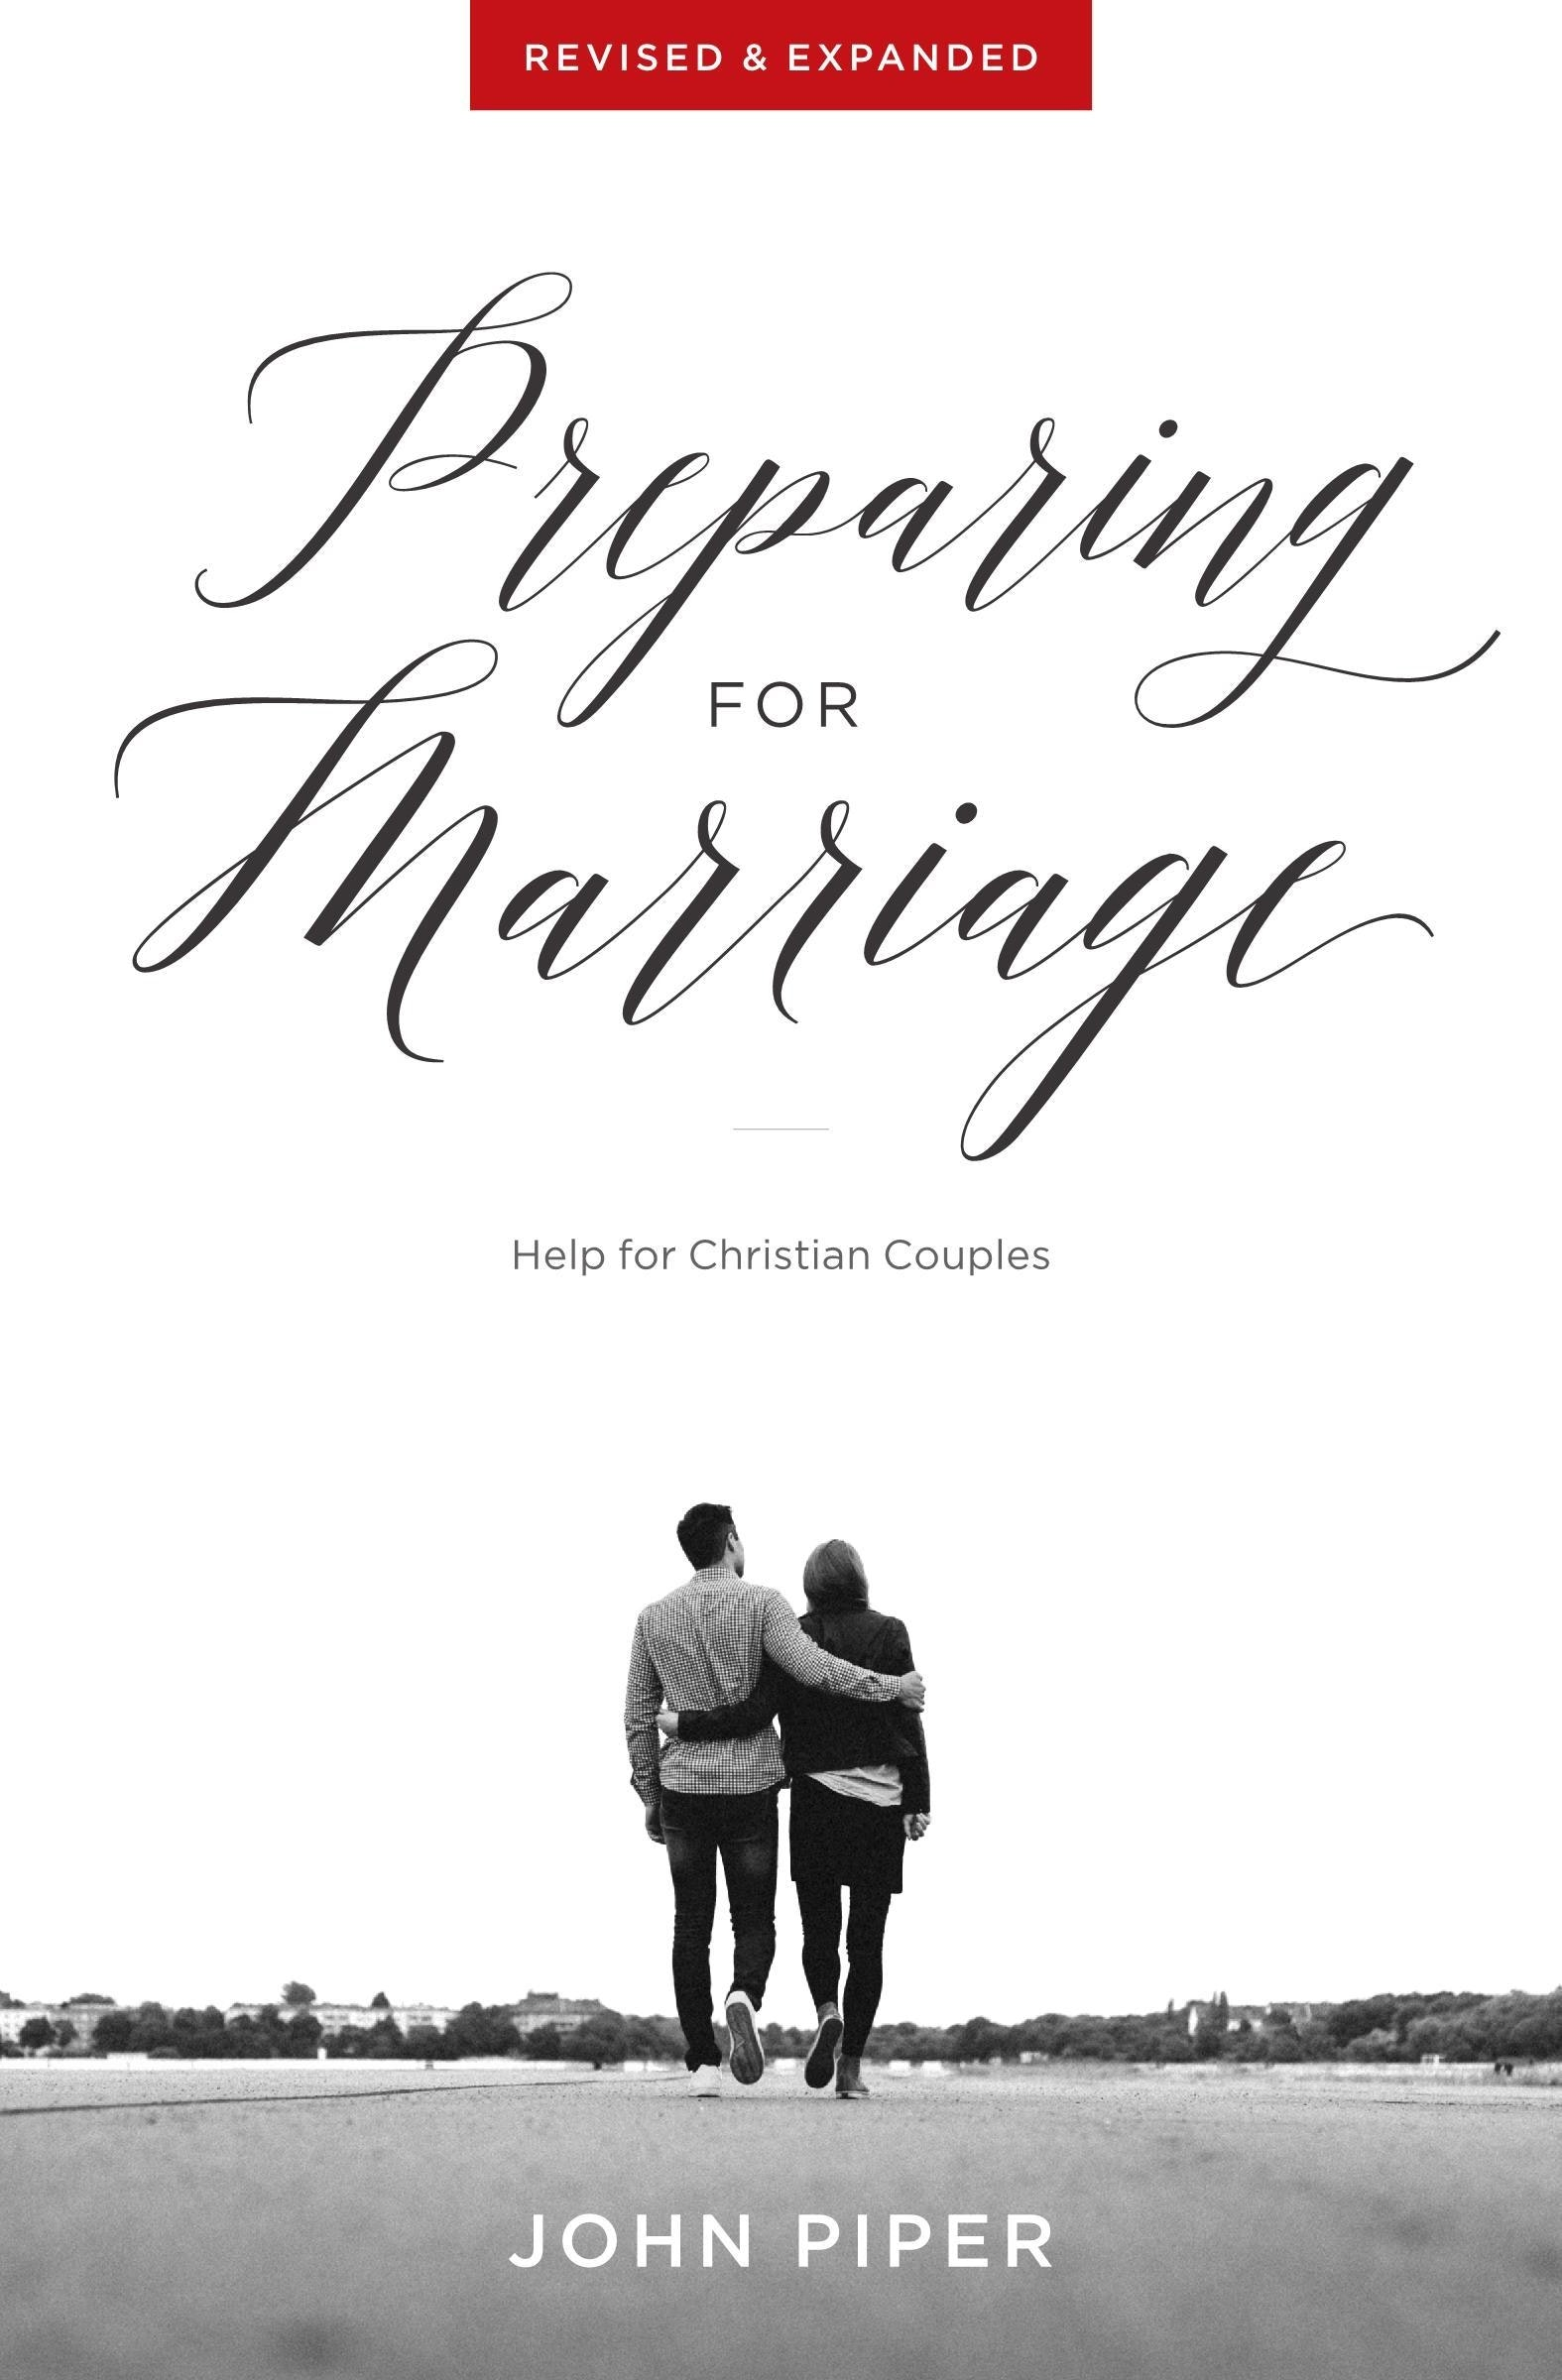 Couple christian dating books for teens